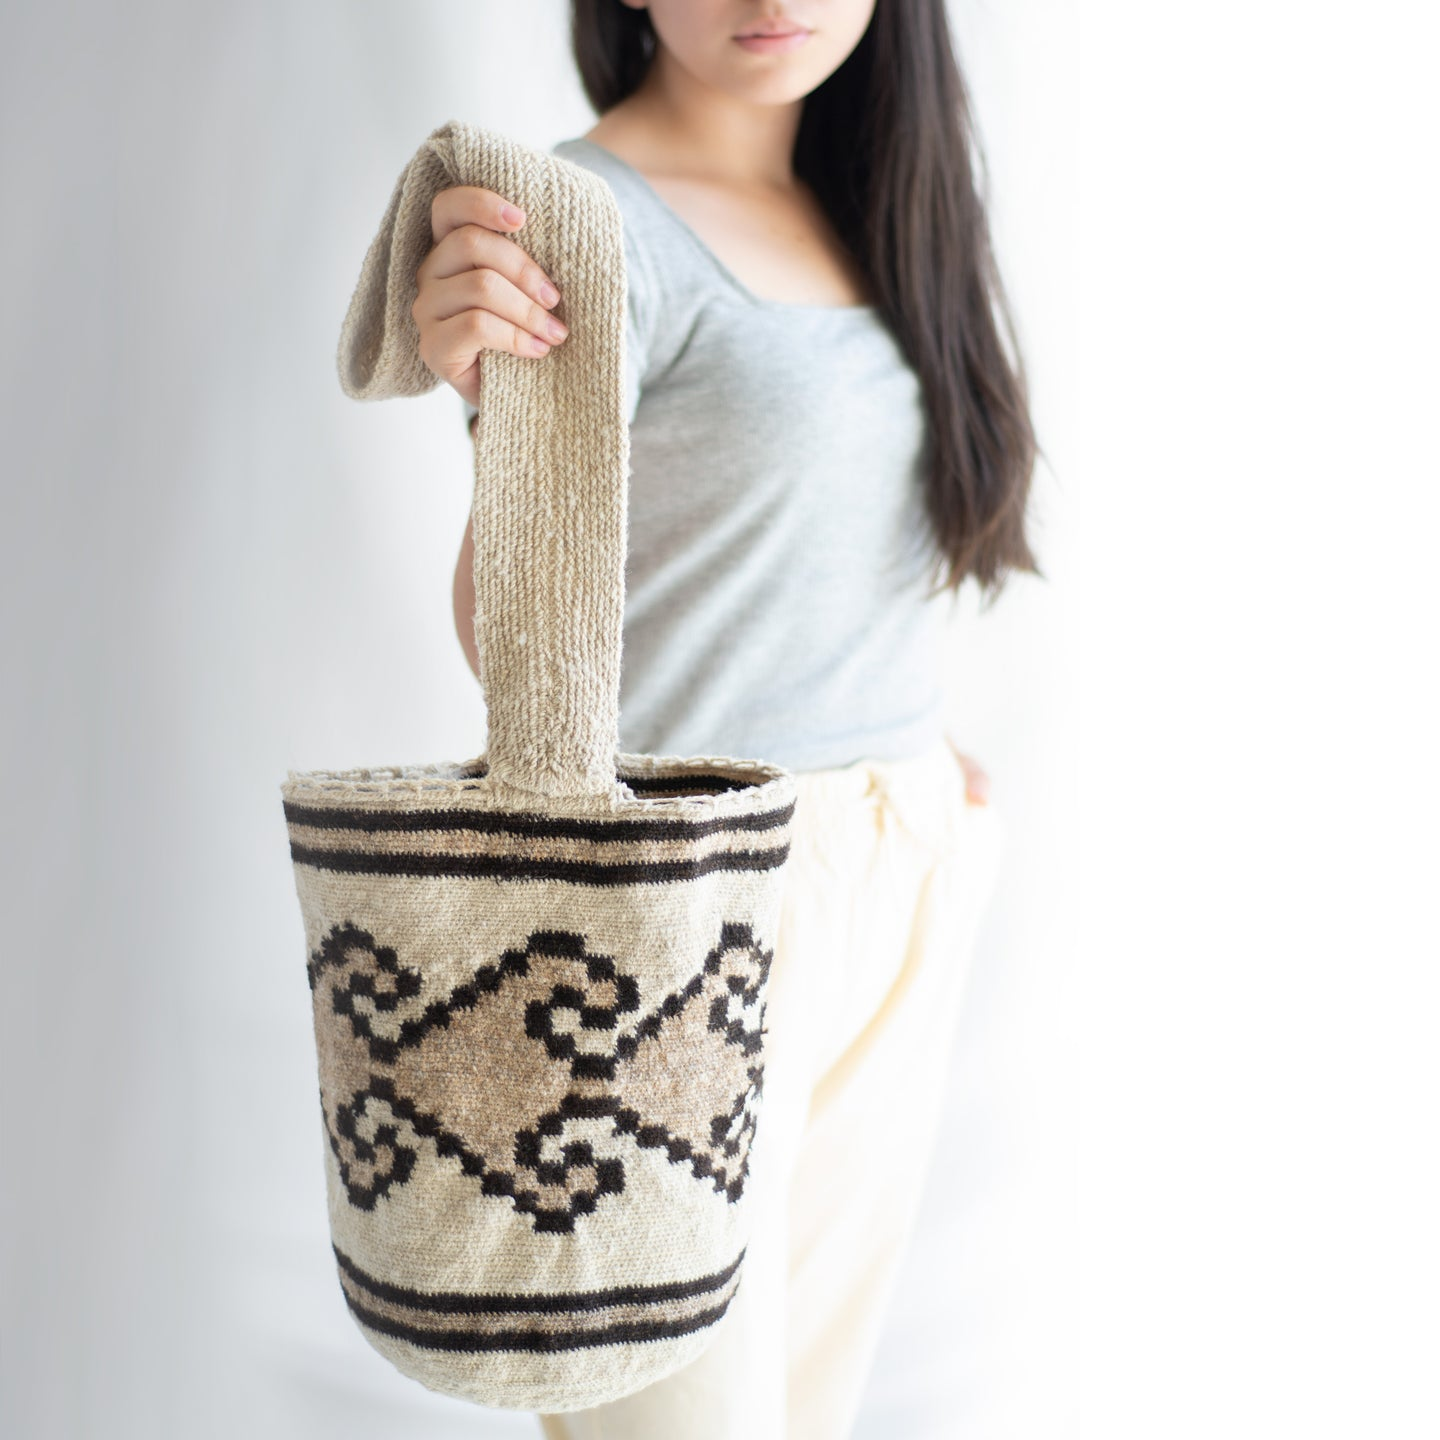 Wool Colombian mochila bag.